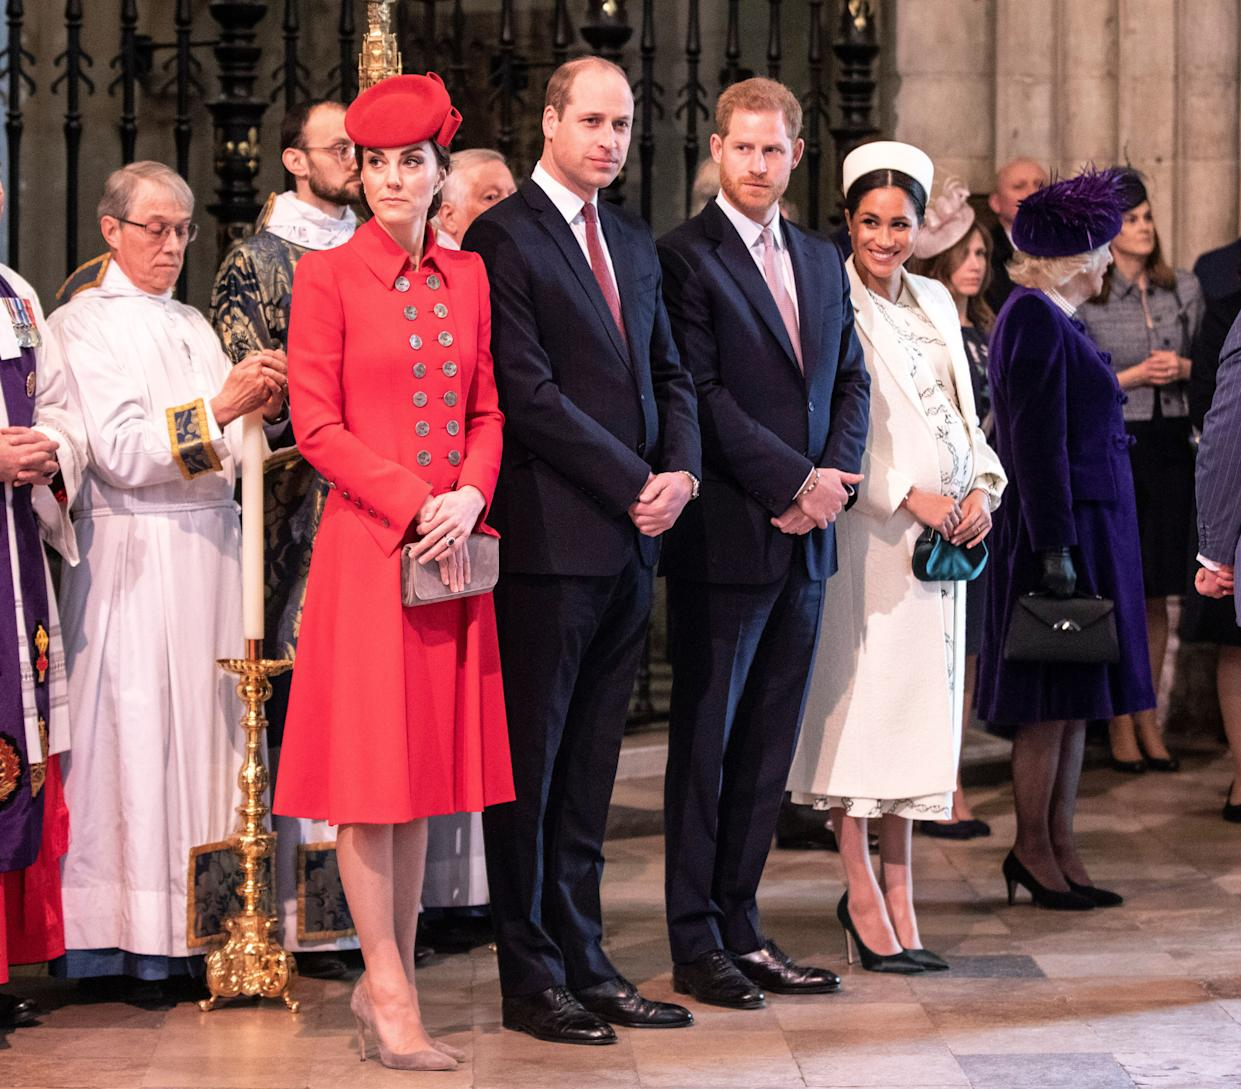 The couples were last pictured together at the Commonwealth Day service in March [Photo: Getty]